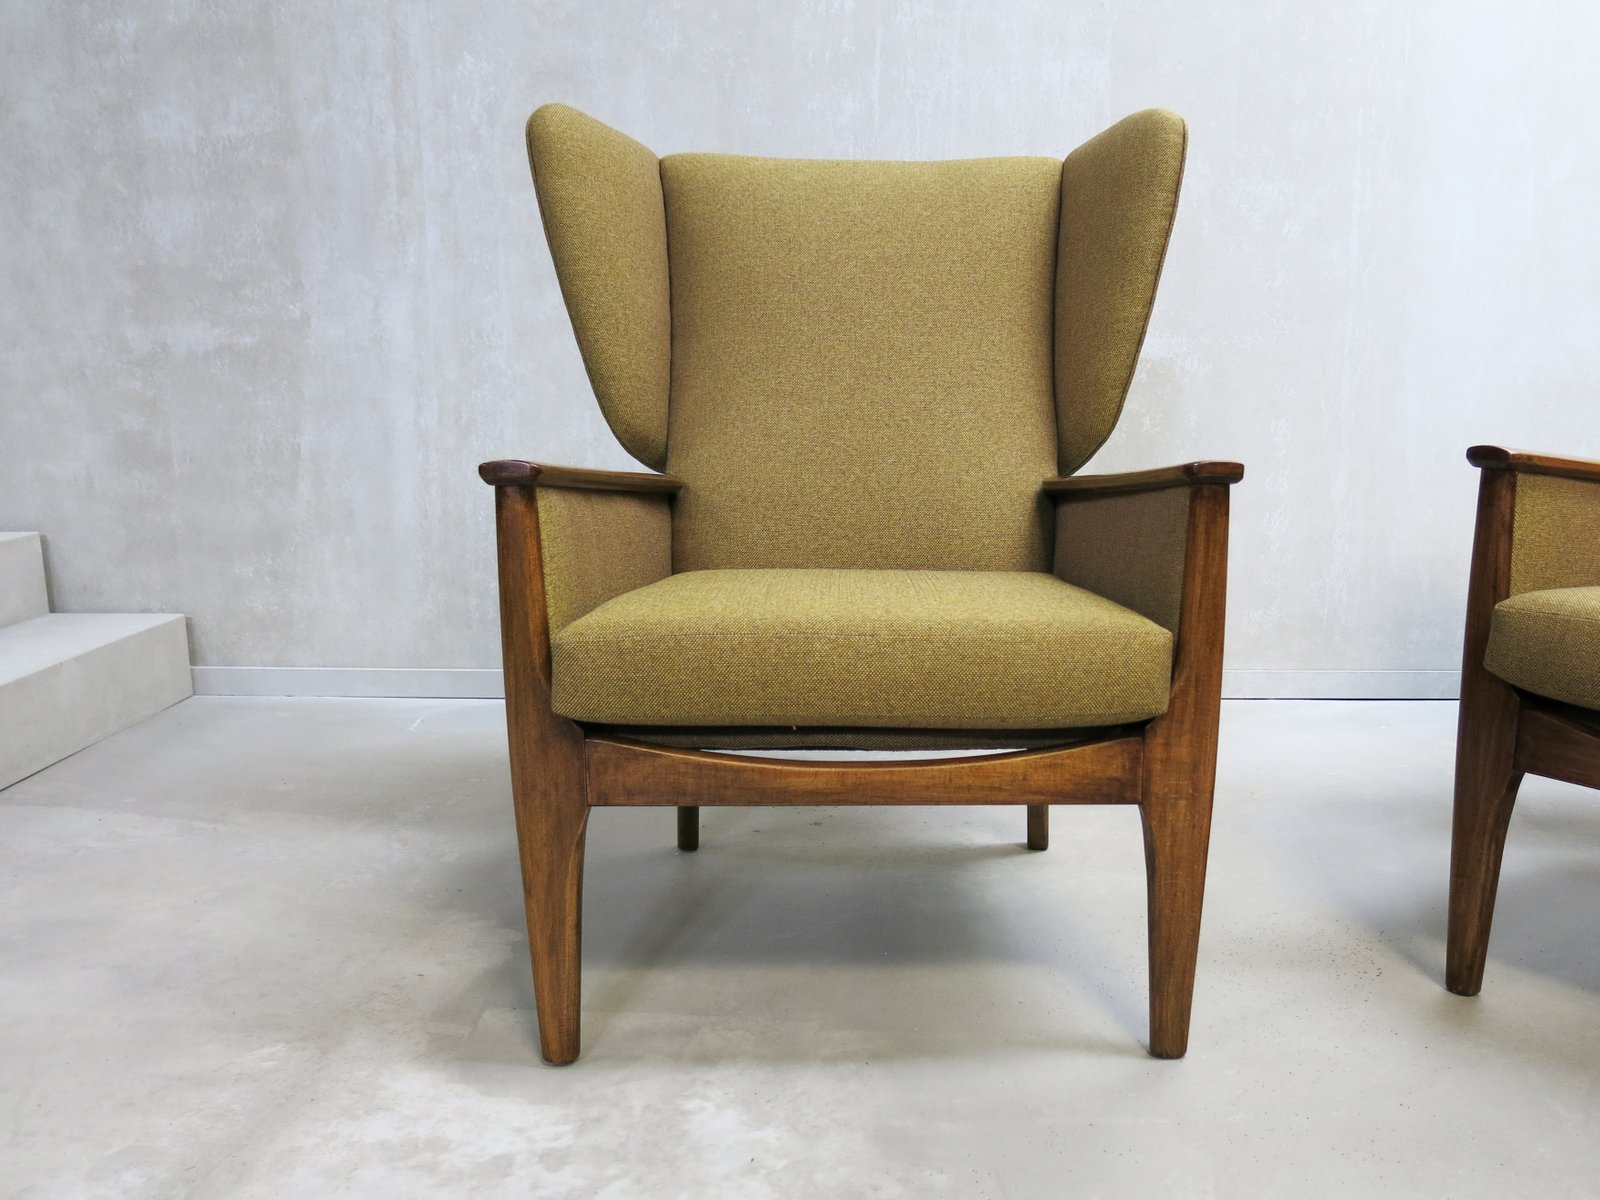 Vintage Wingback Chairs from Parker Knoll 1960s Set of 2 for